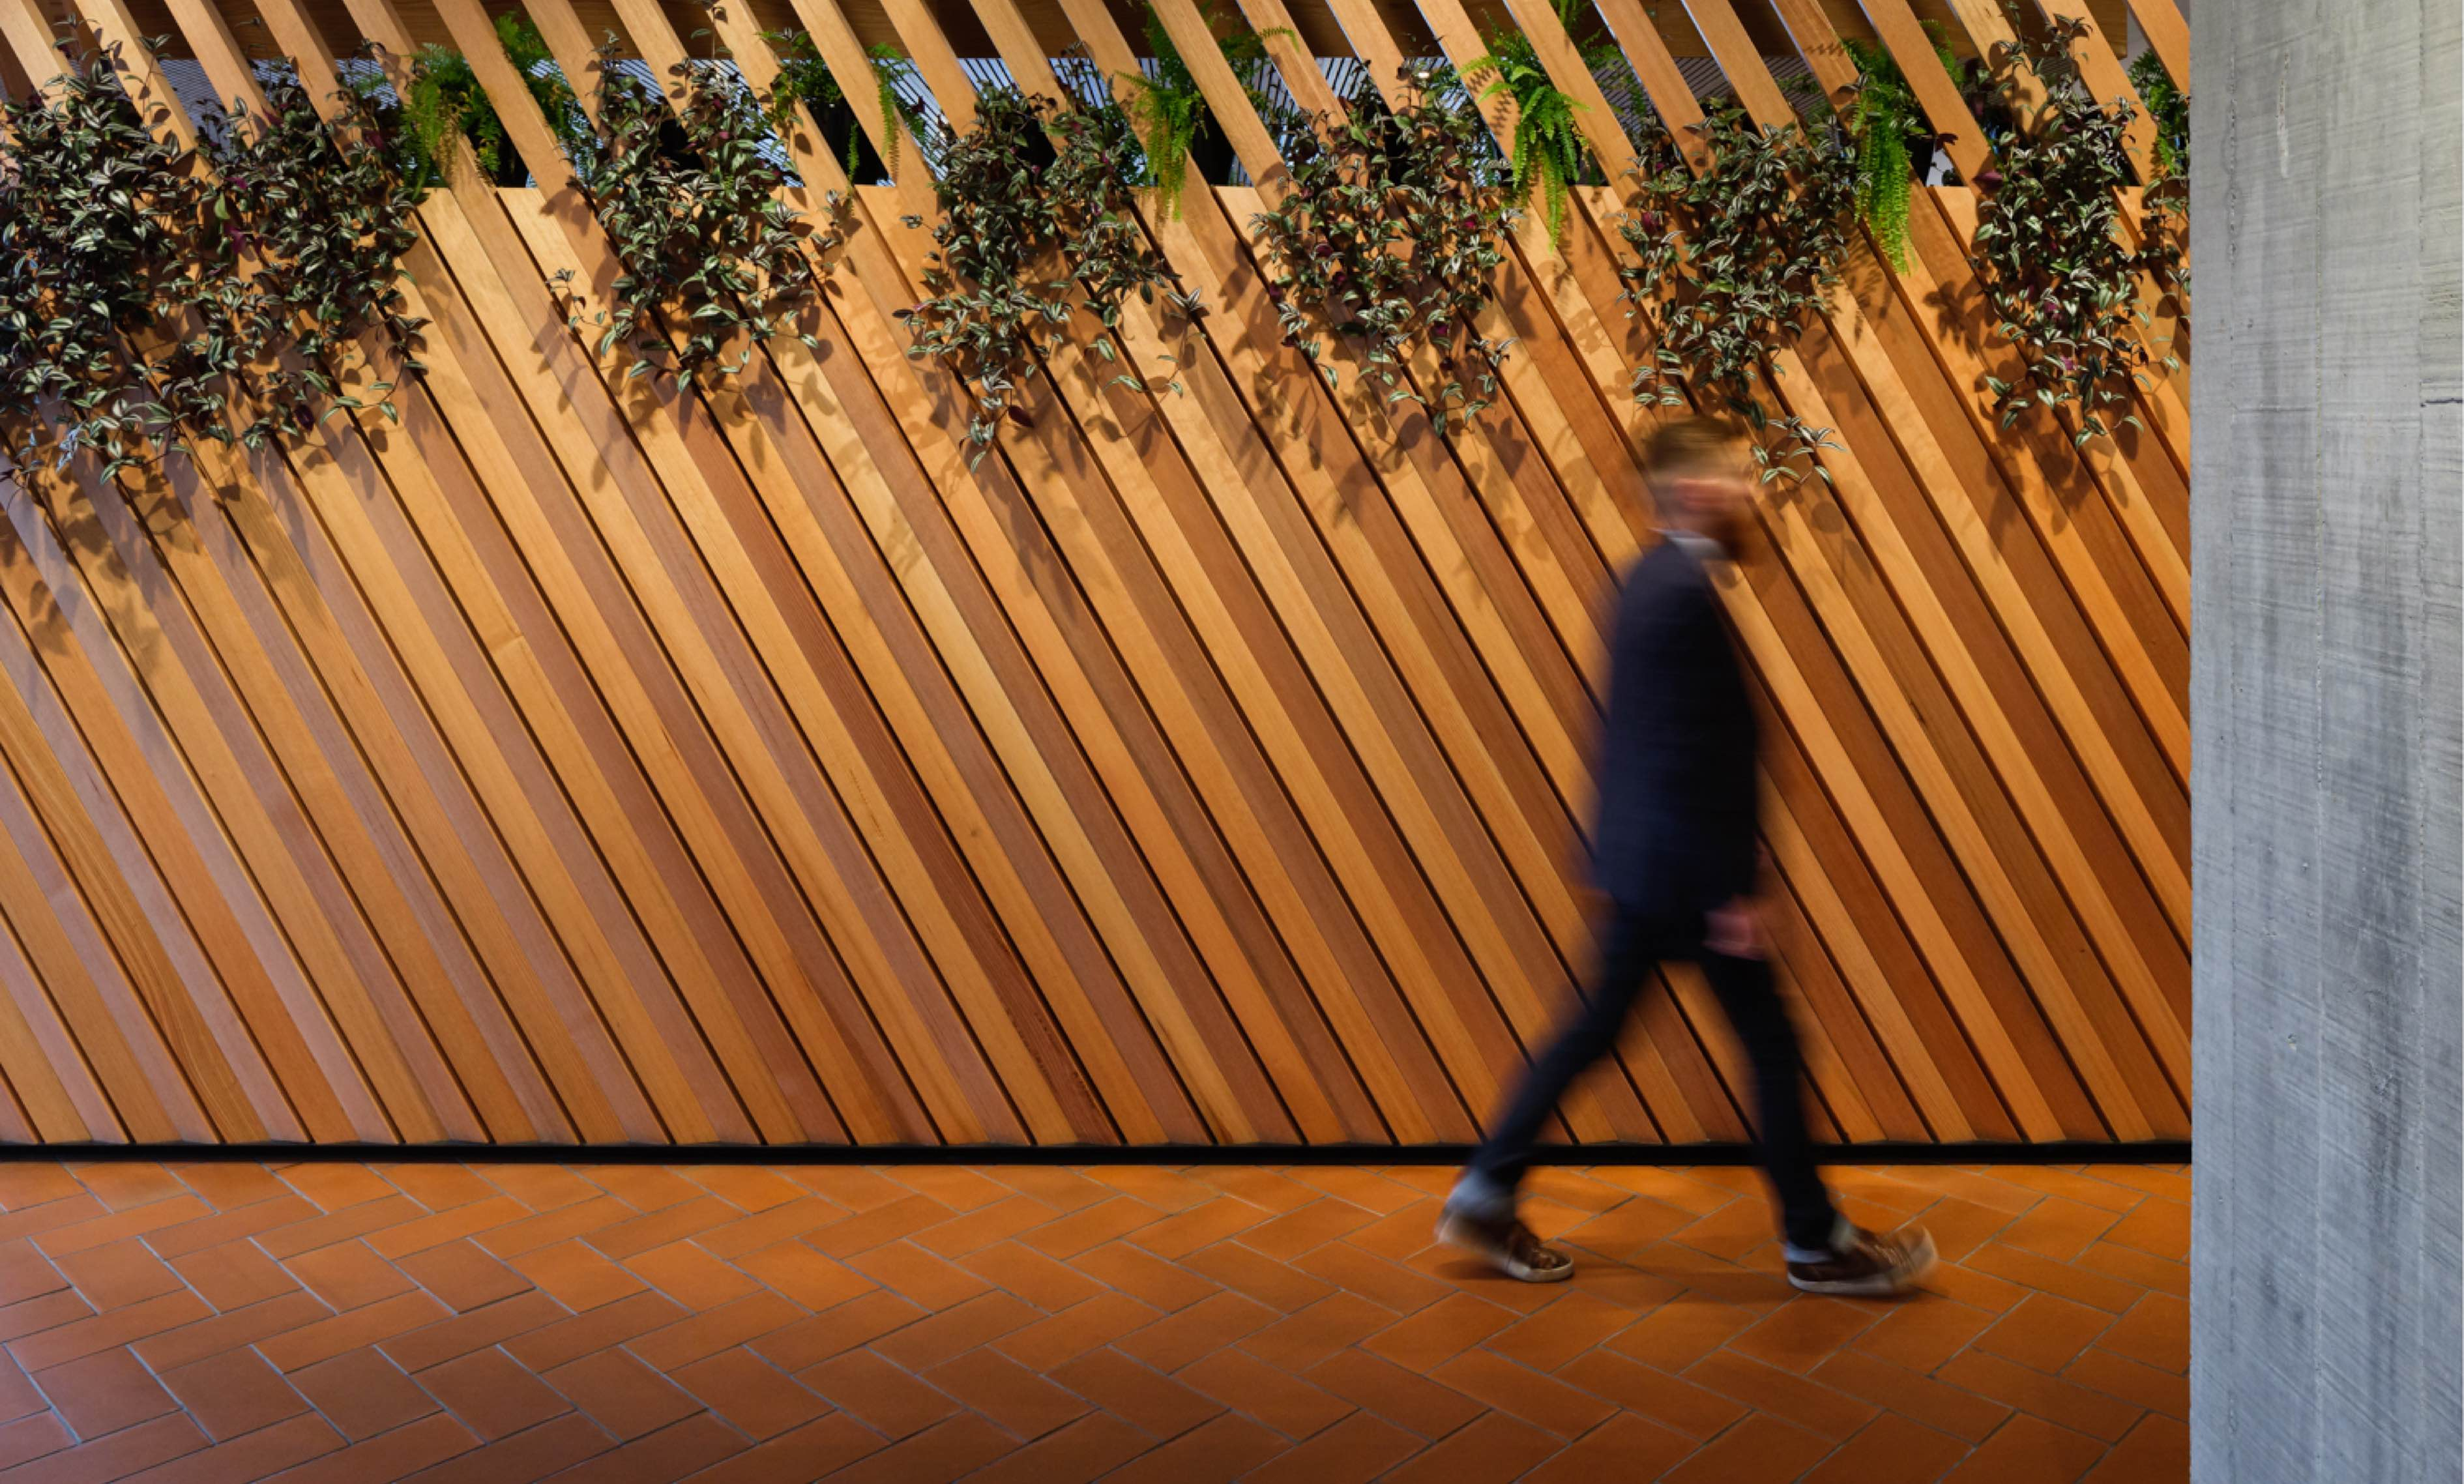 Suited man, out of focus, walks past slatted wooden wall with planting growing through slats